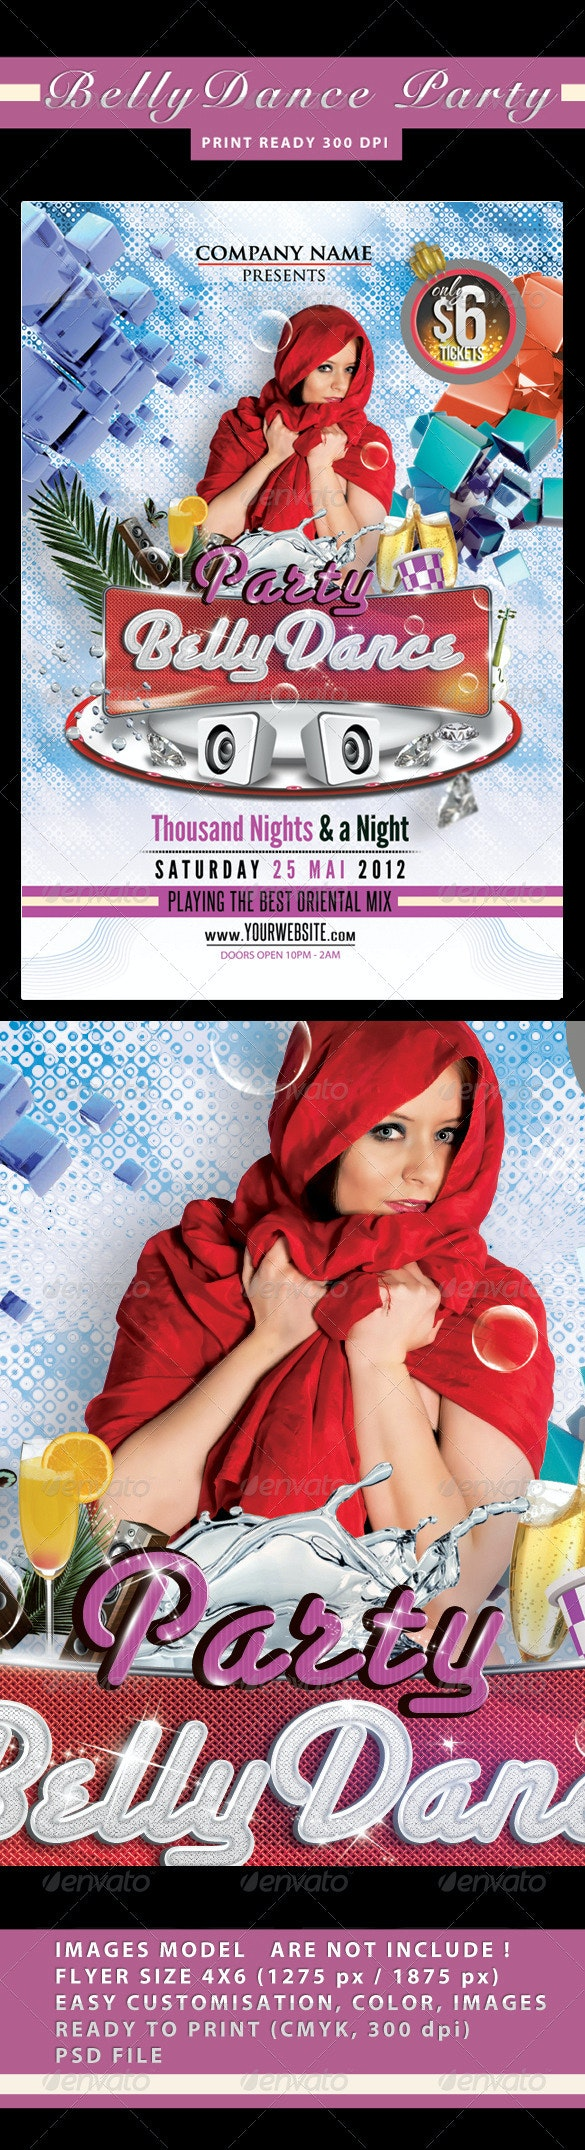 Belly Dance Party Flyer - Flyers Print Templates